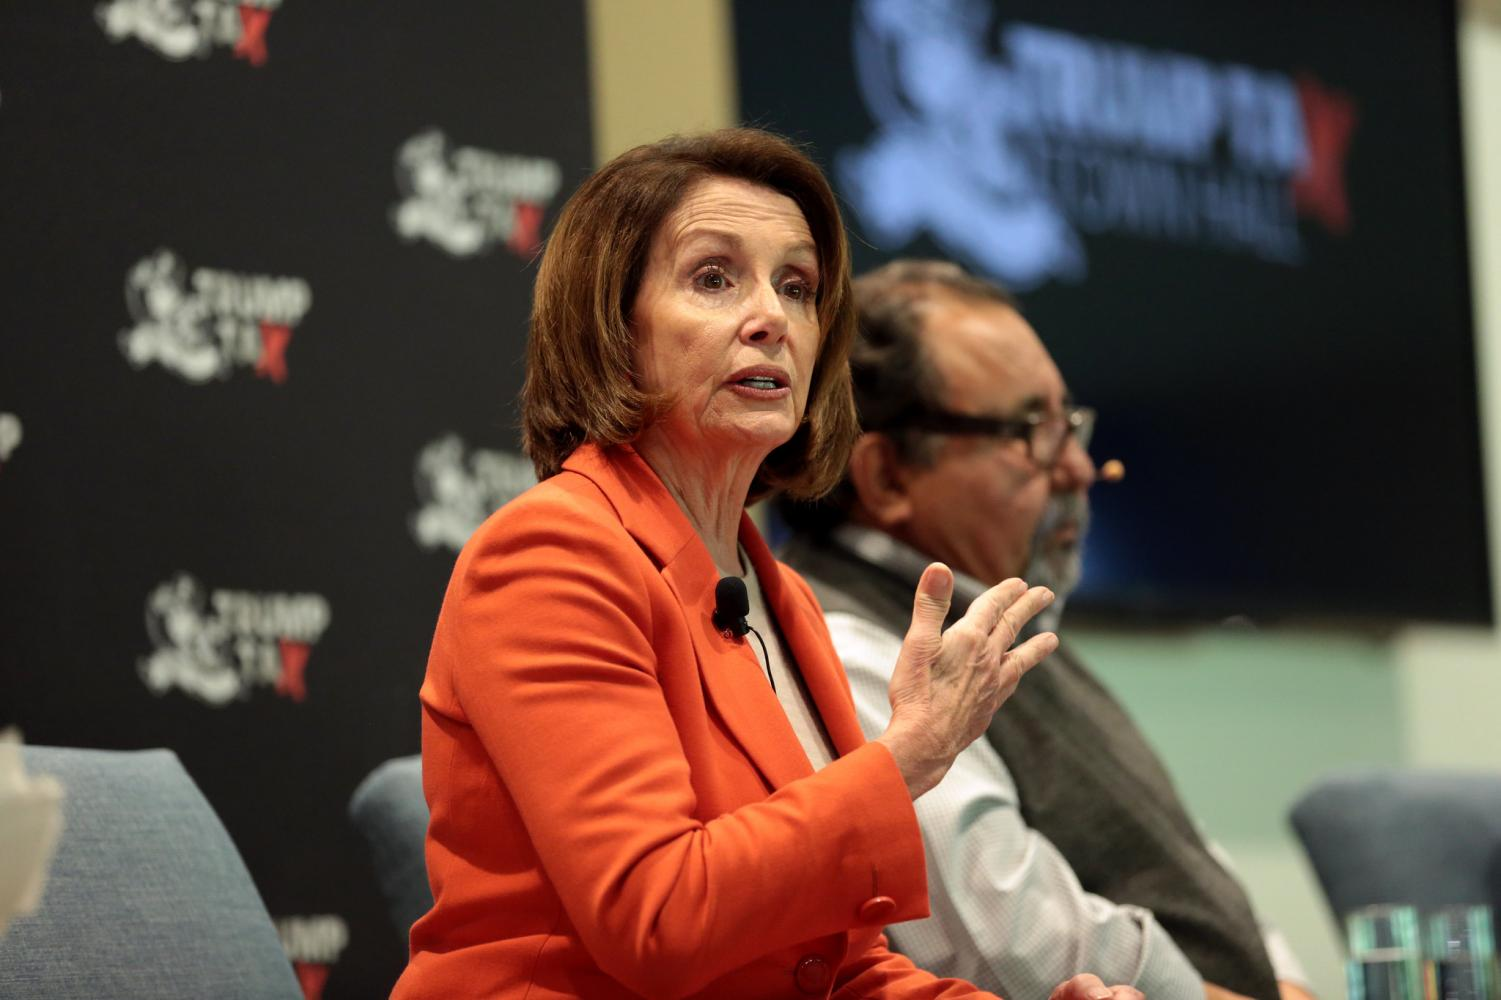 Nancy Pelosi, the Democratic Speaker of the house, is currently heavily involved in the impeachment inquiry.